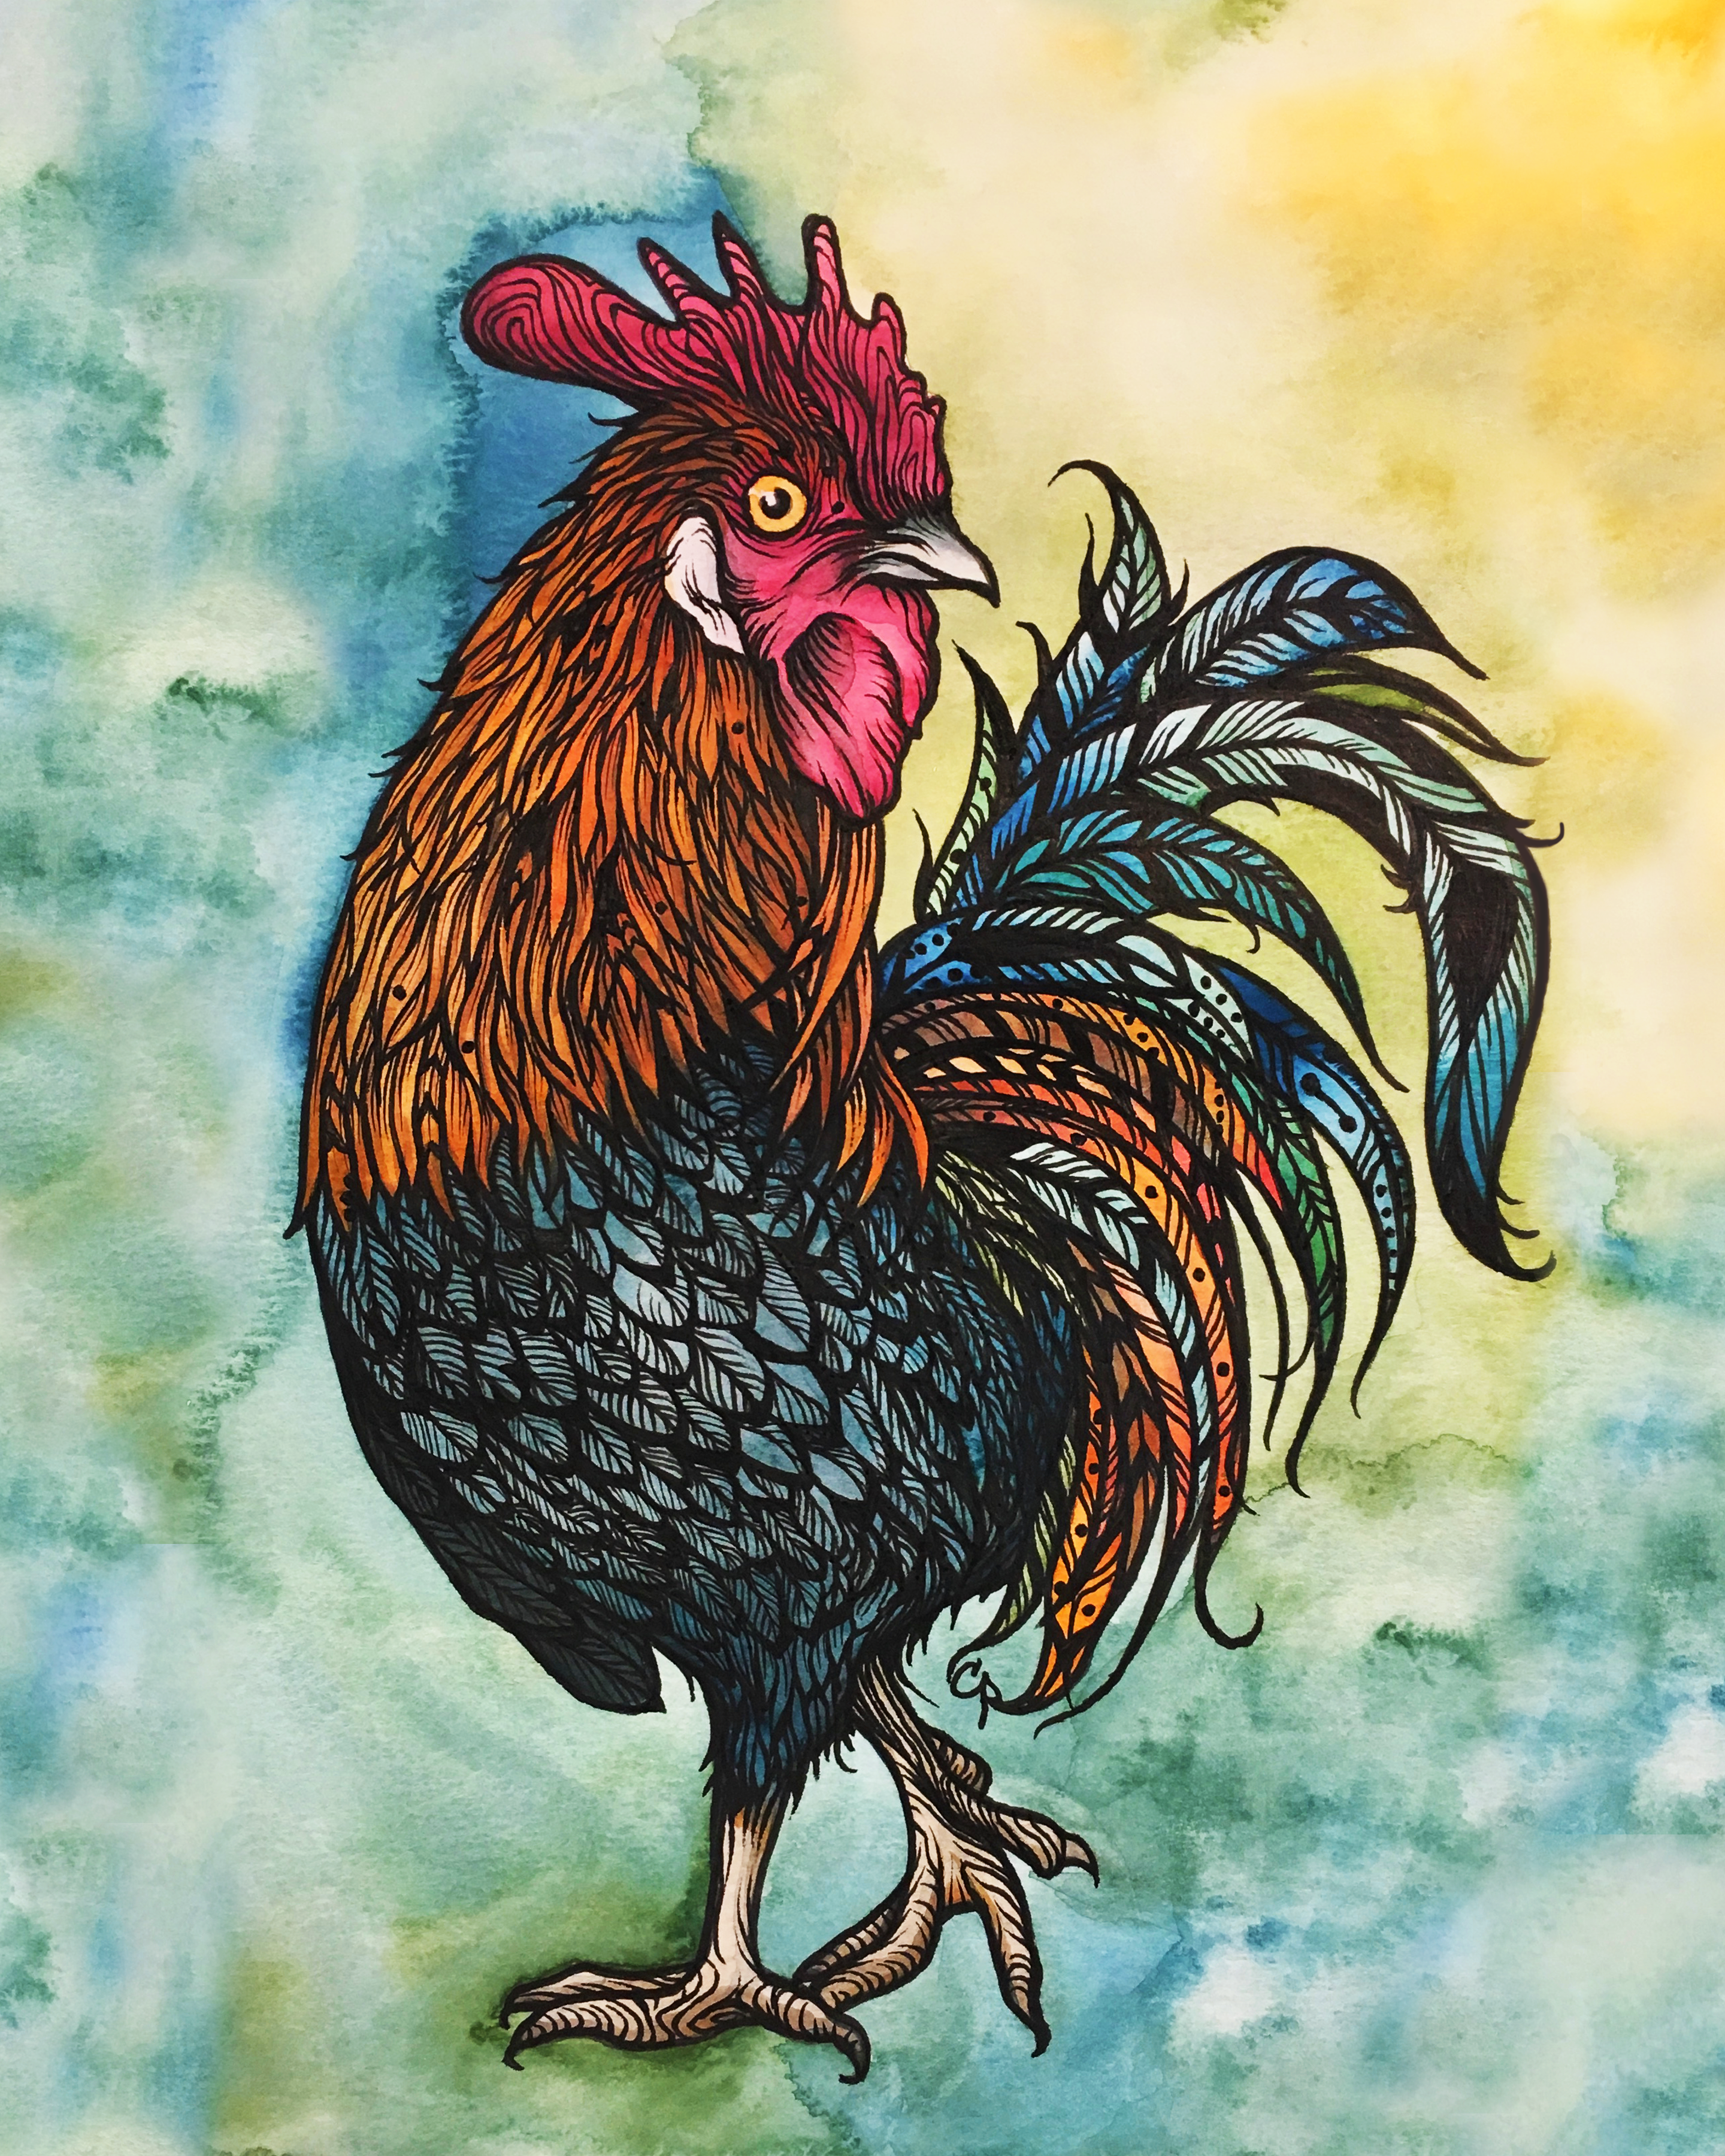 Le Coq (The Rooster) Illustration by Cat Paschal Dolch